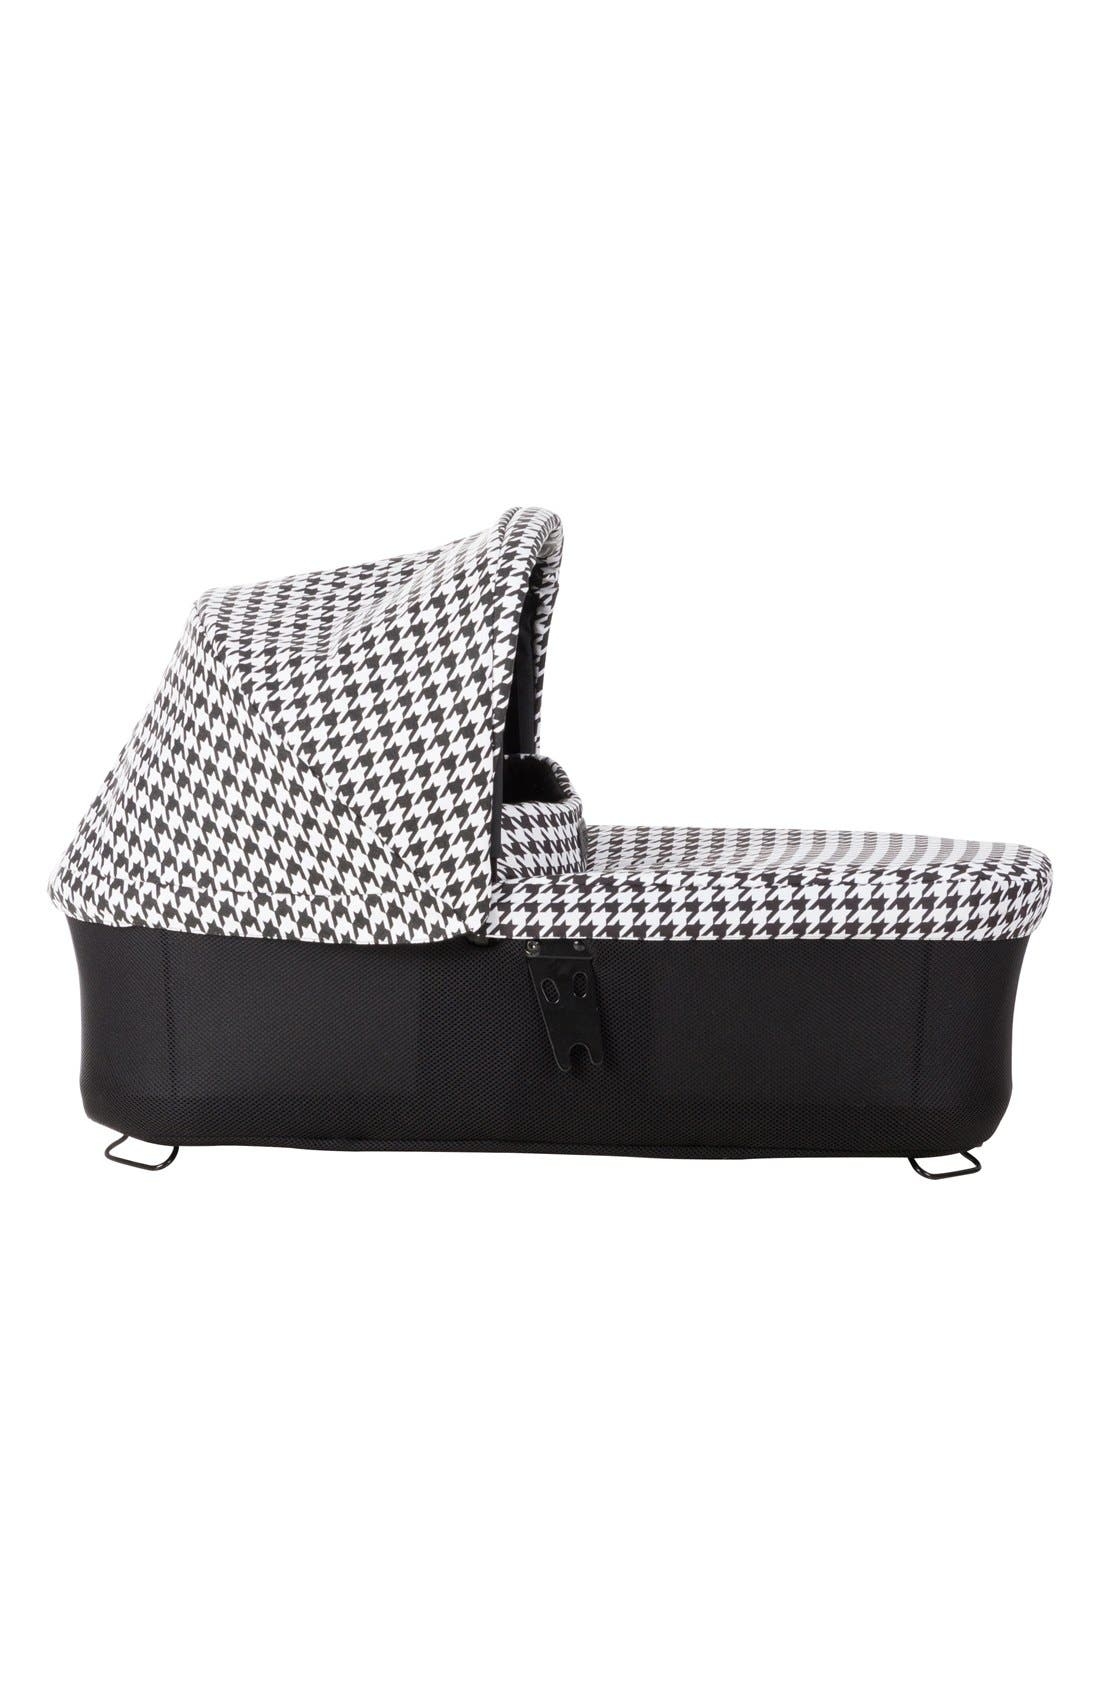 Urban Jungle - The Luxury Collection Carrycot Plus,                             Alternate thumbnail 4, color,                             PEPITA